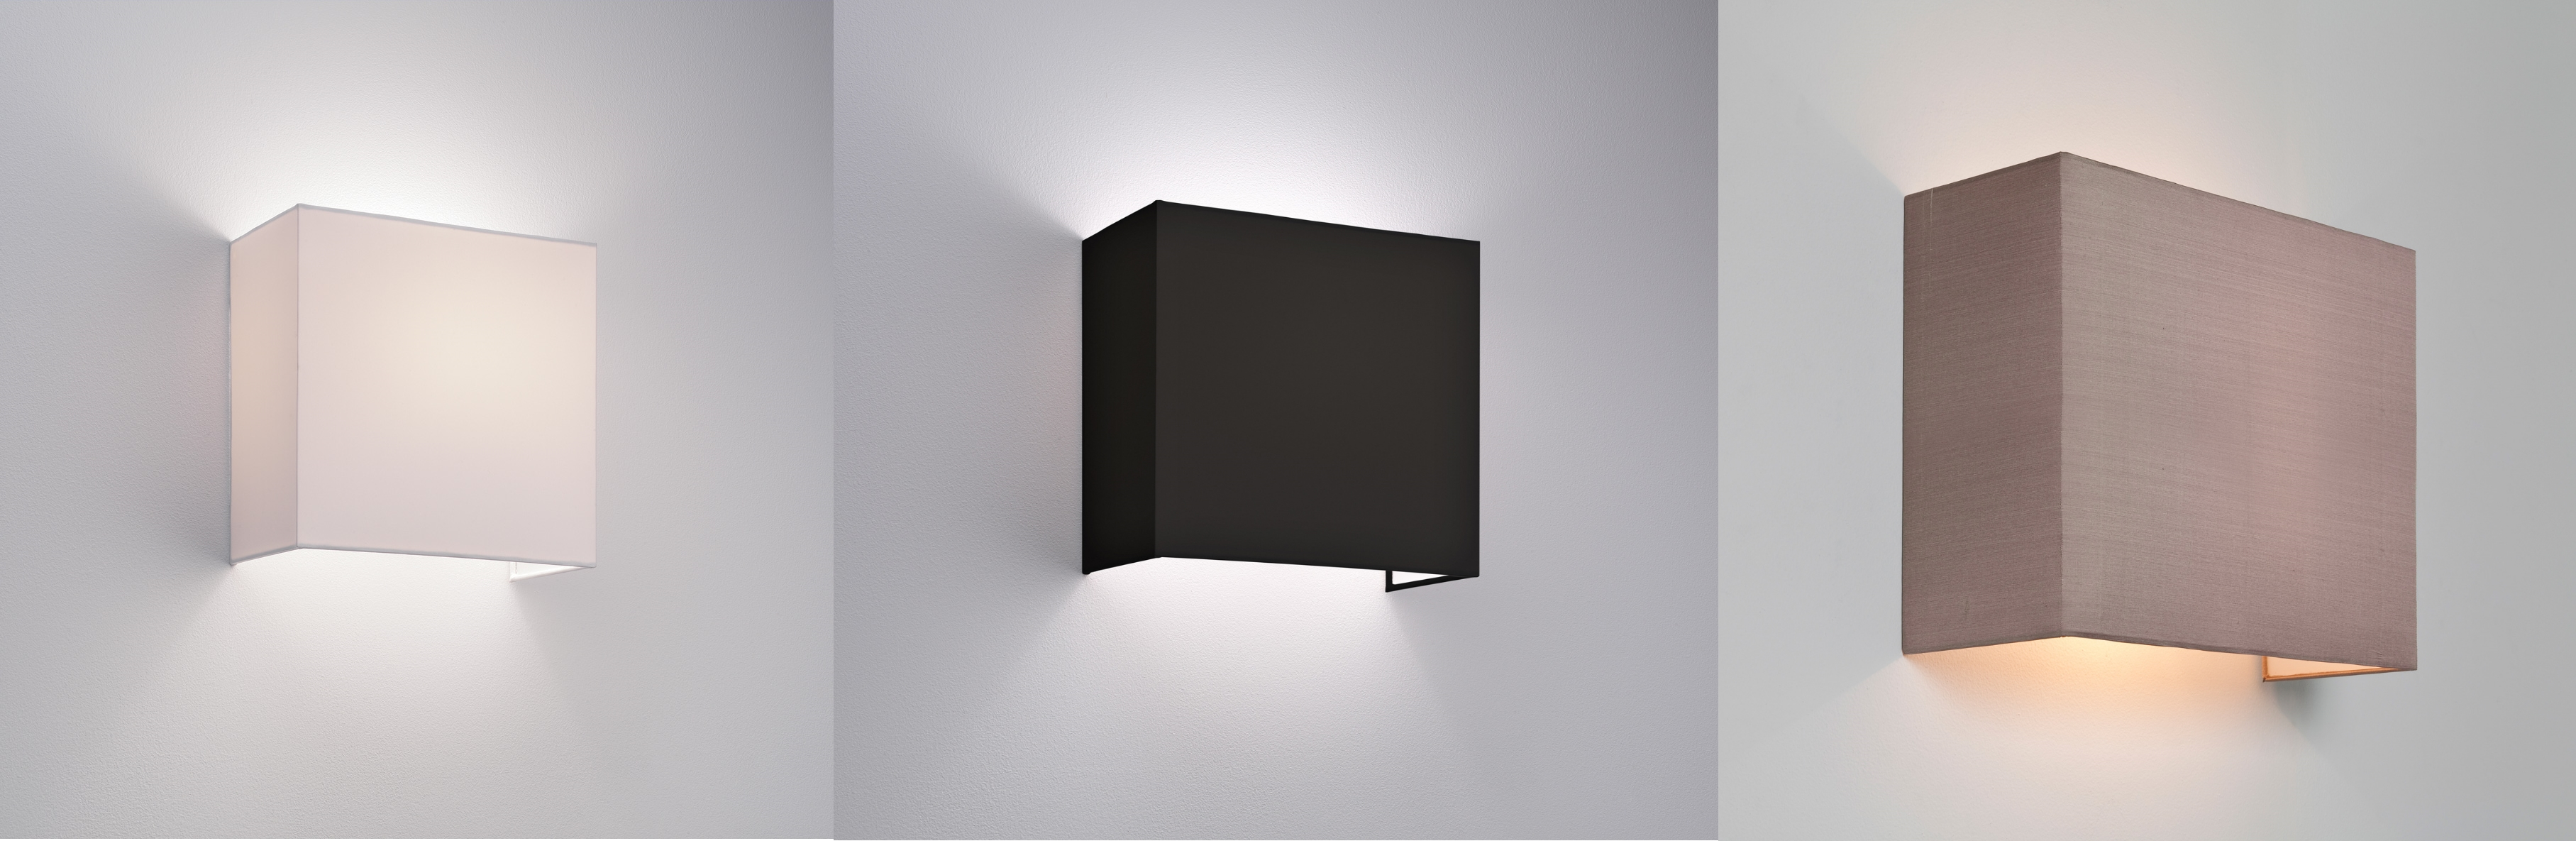 Fabric Wall Lamp Shades : Astro Chuo 250 fabric wall light shade 60W E27 white black oyster eBay